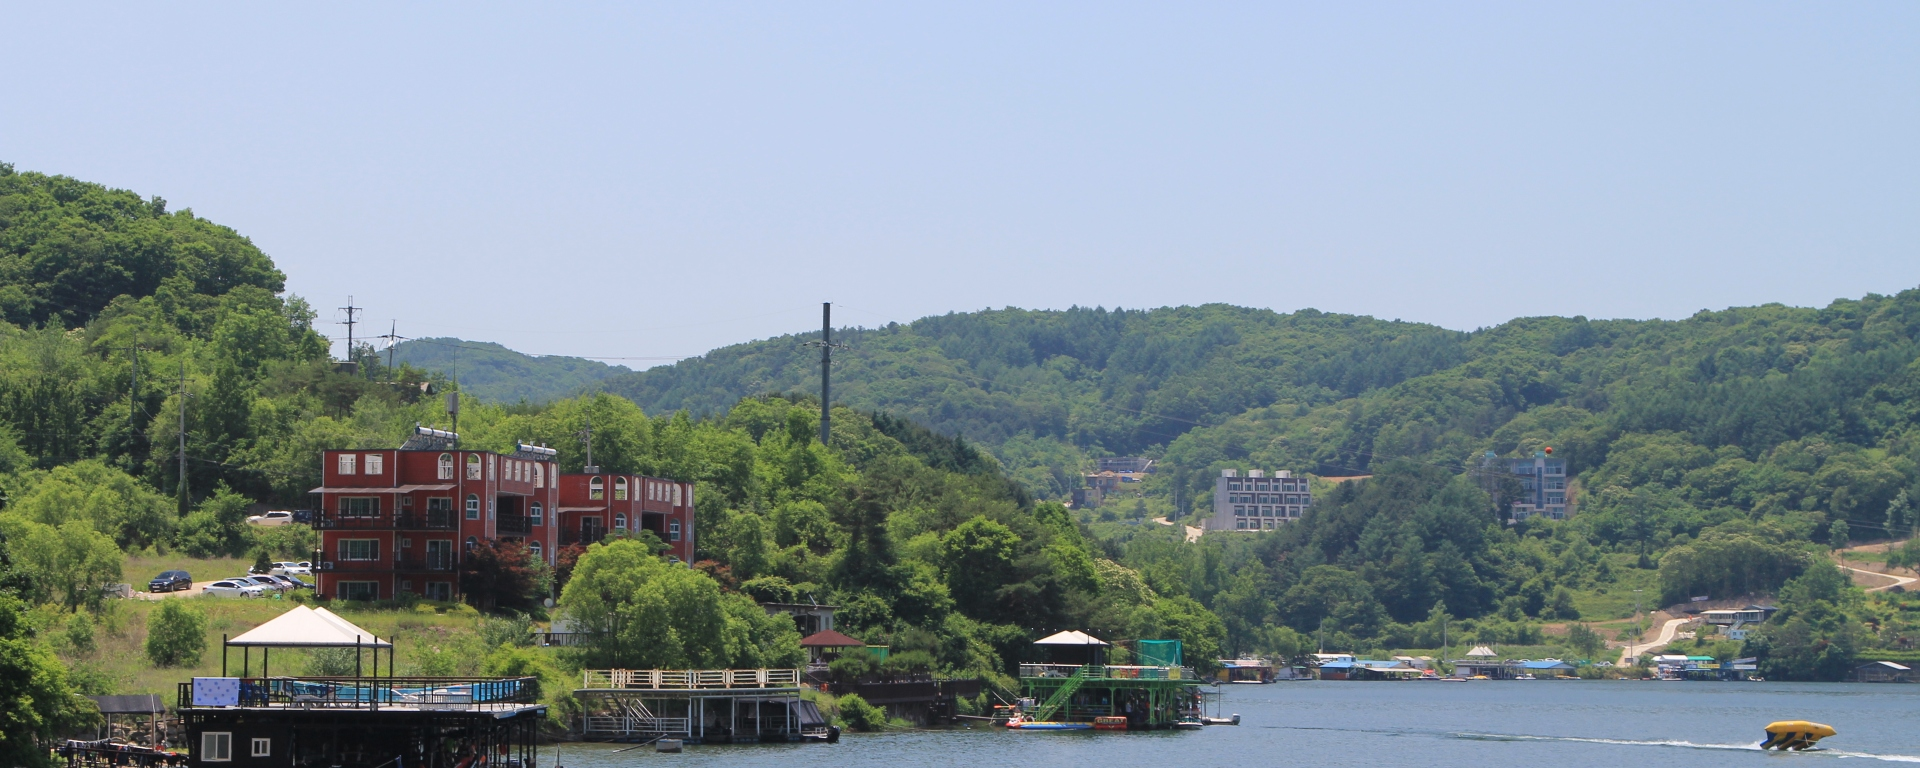 Overview of Establishments at Cheongpyeong Lake